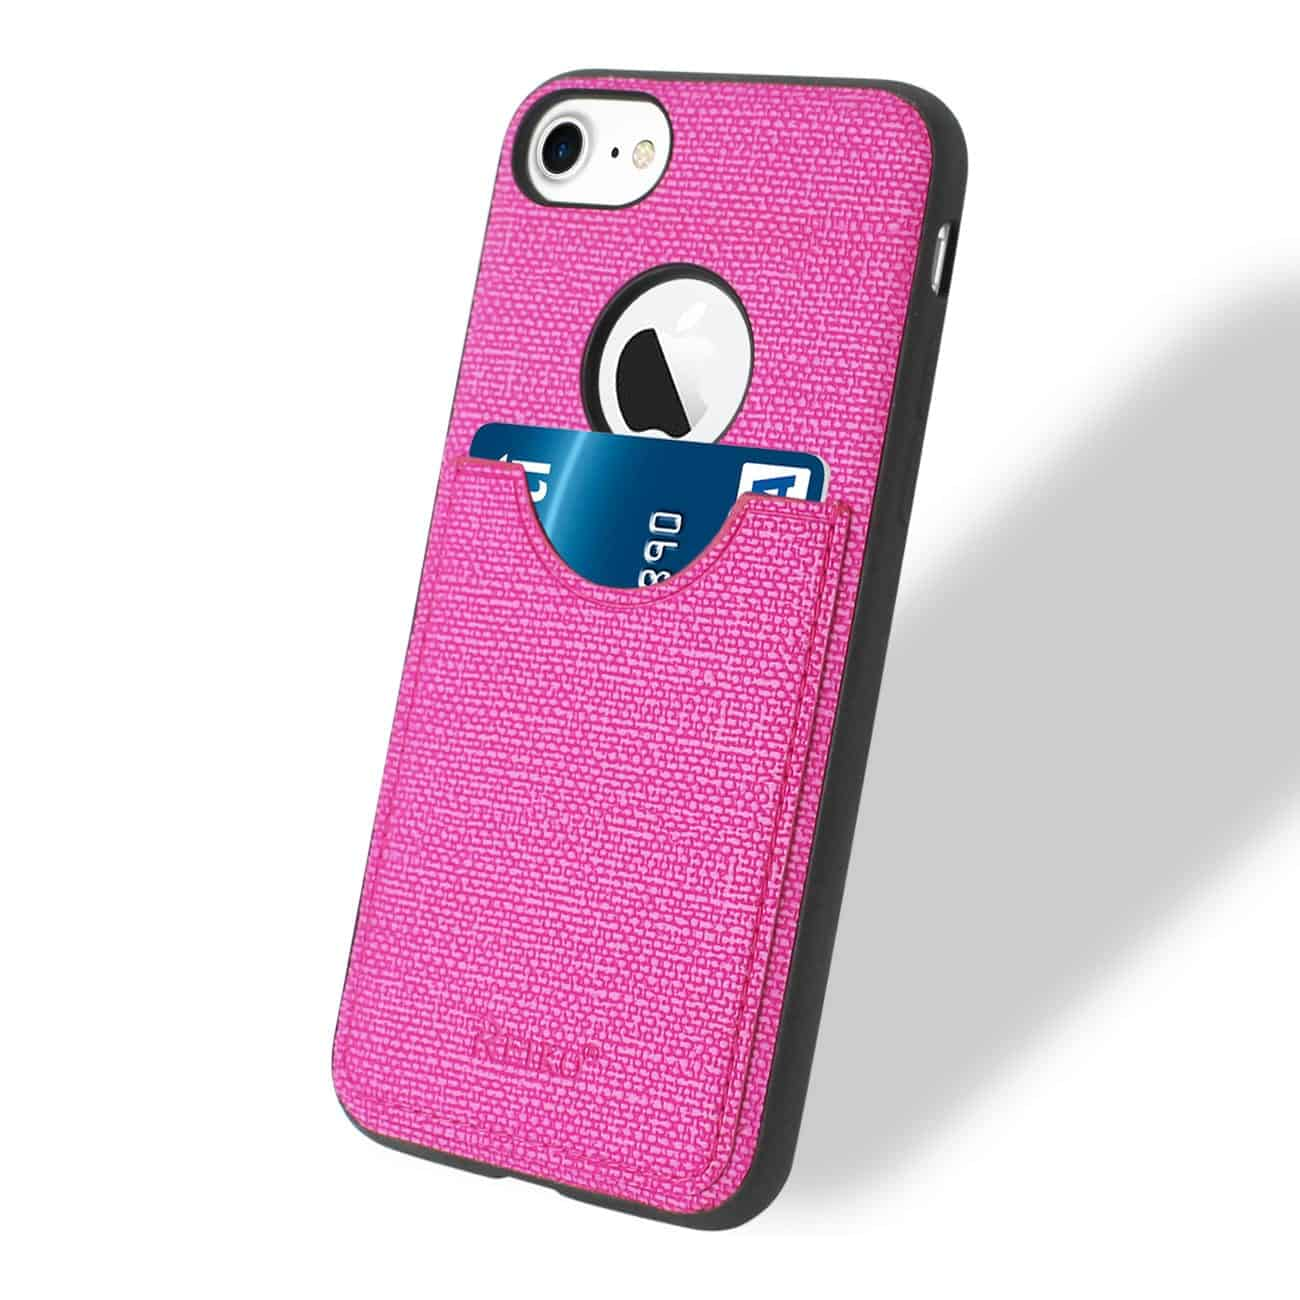 iPhone 8/ 7 Anti-Slip Texture Protector Cover With Card Slot In Hot Pink